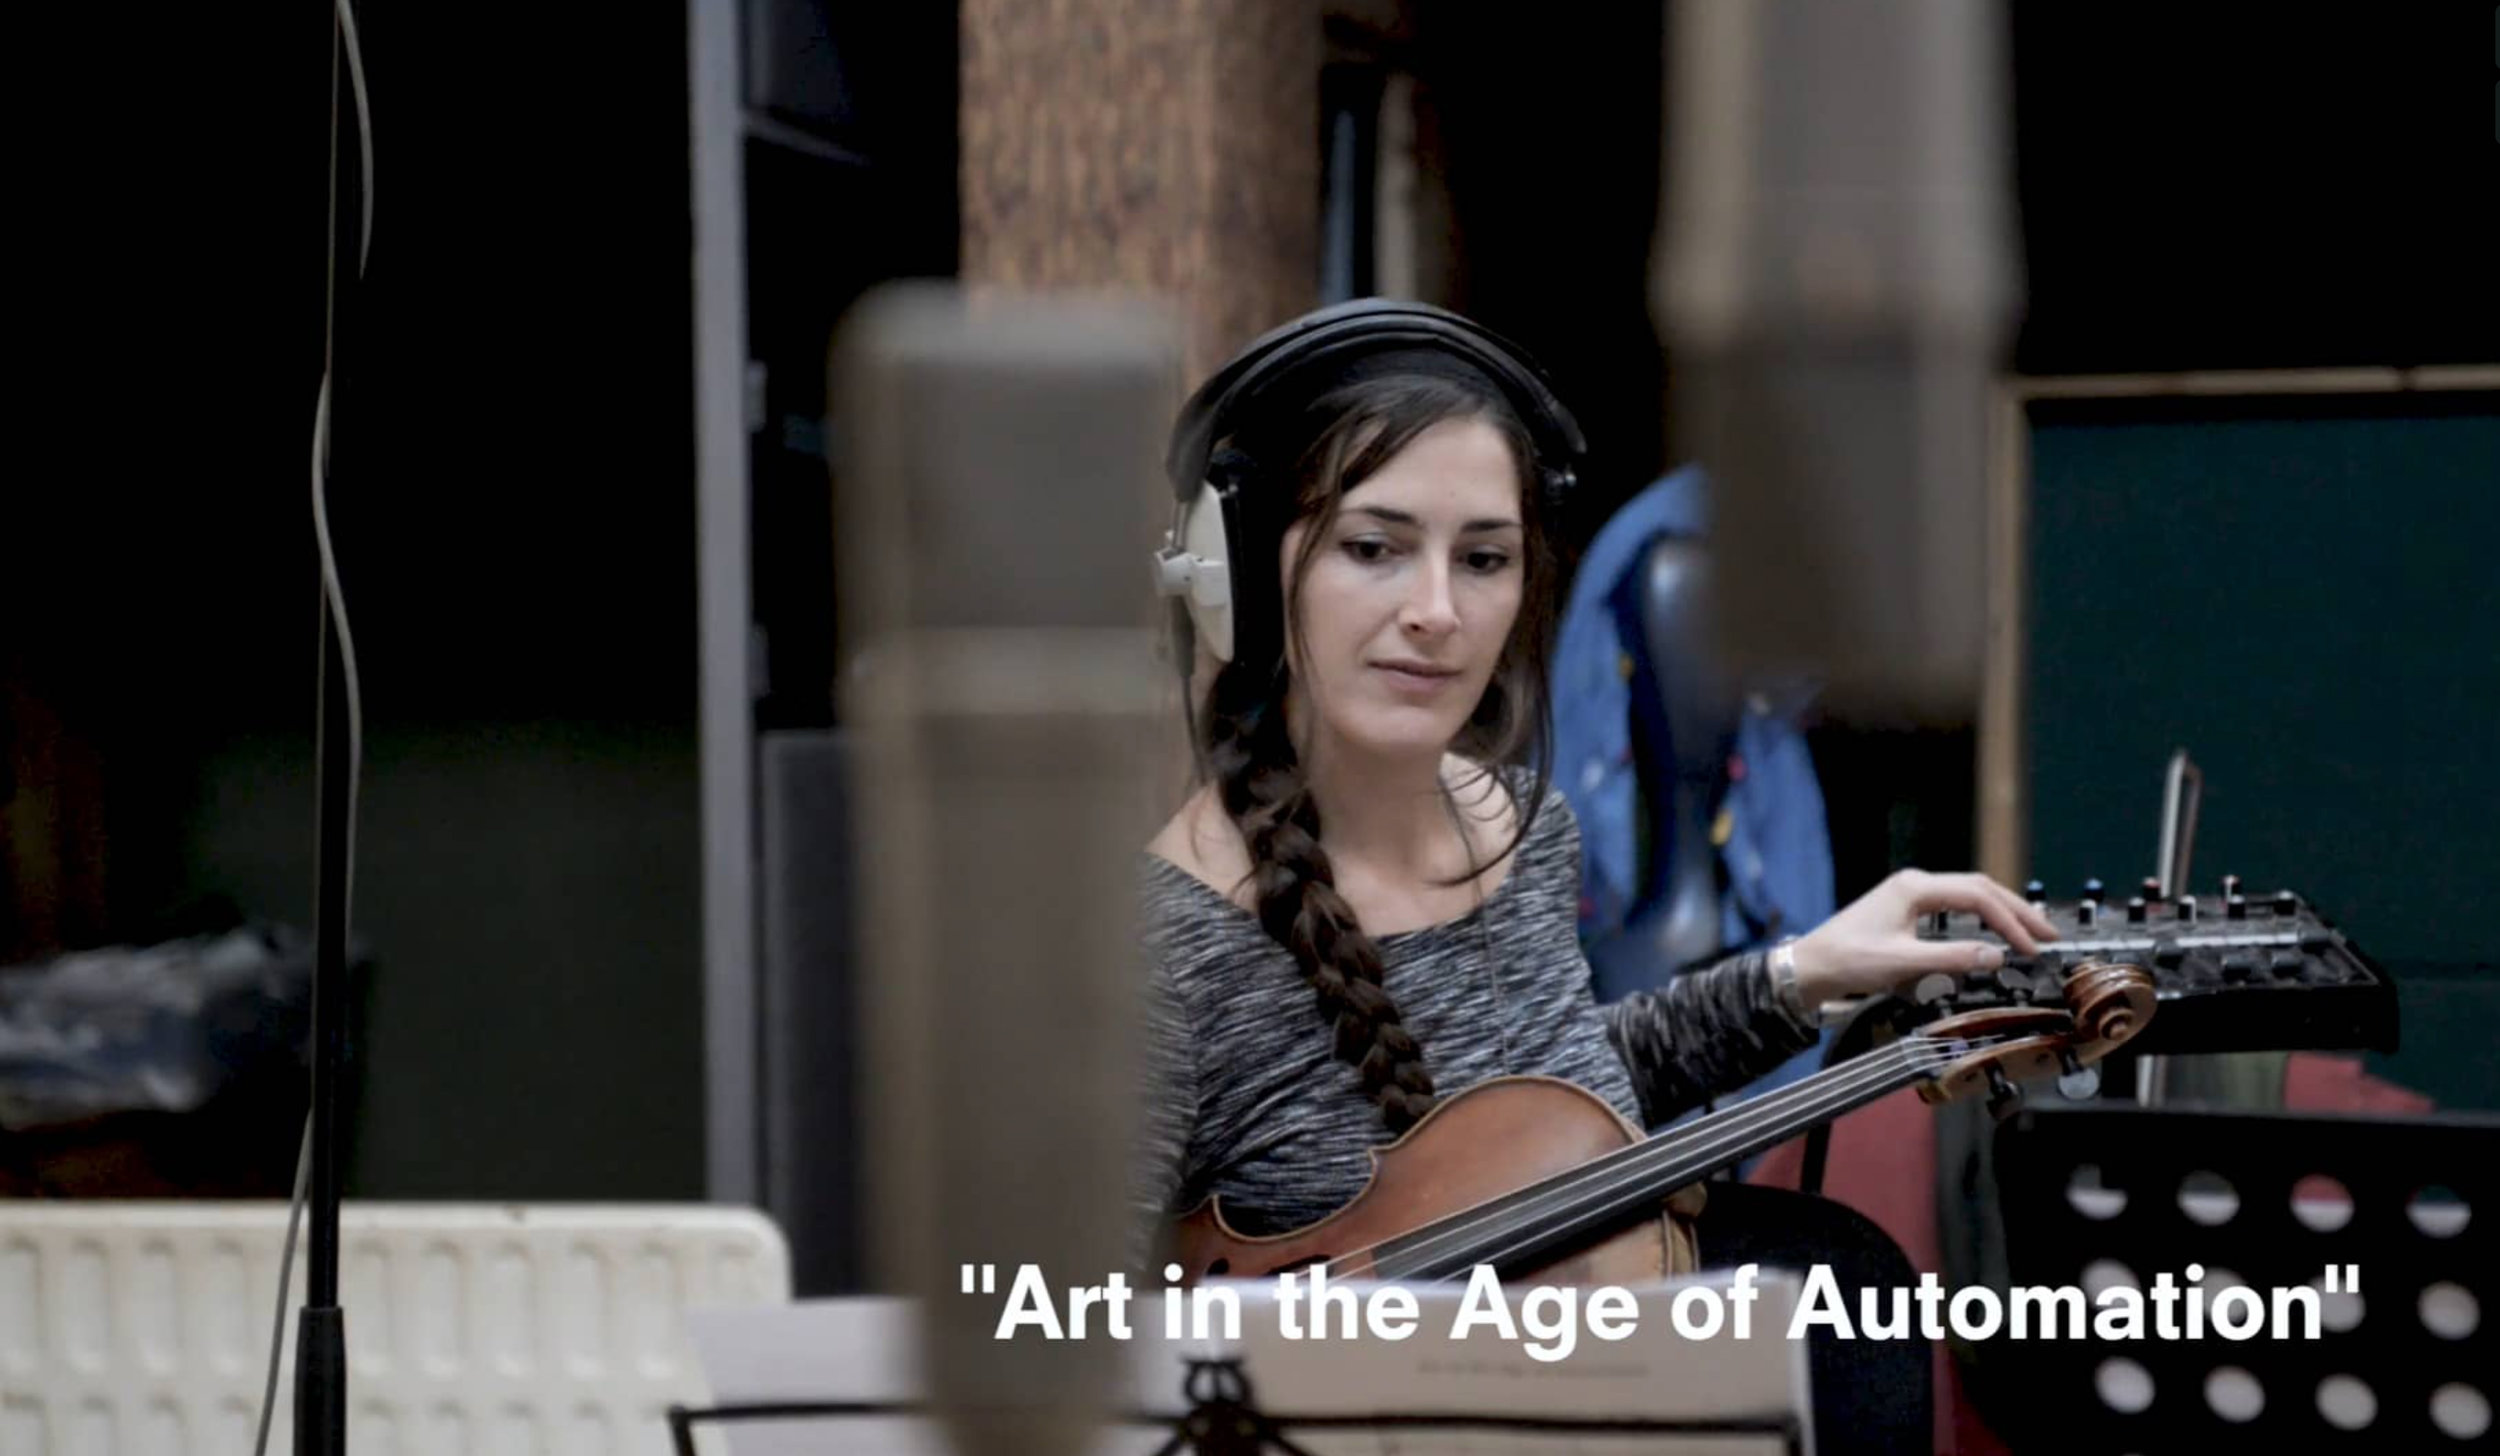 Art in the Age of Automation: Portico Quartet